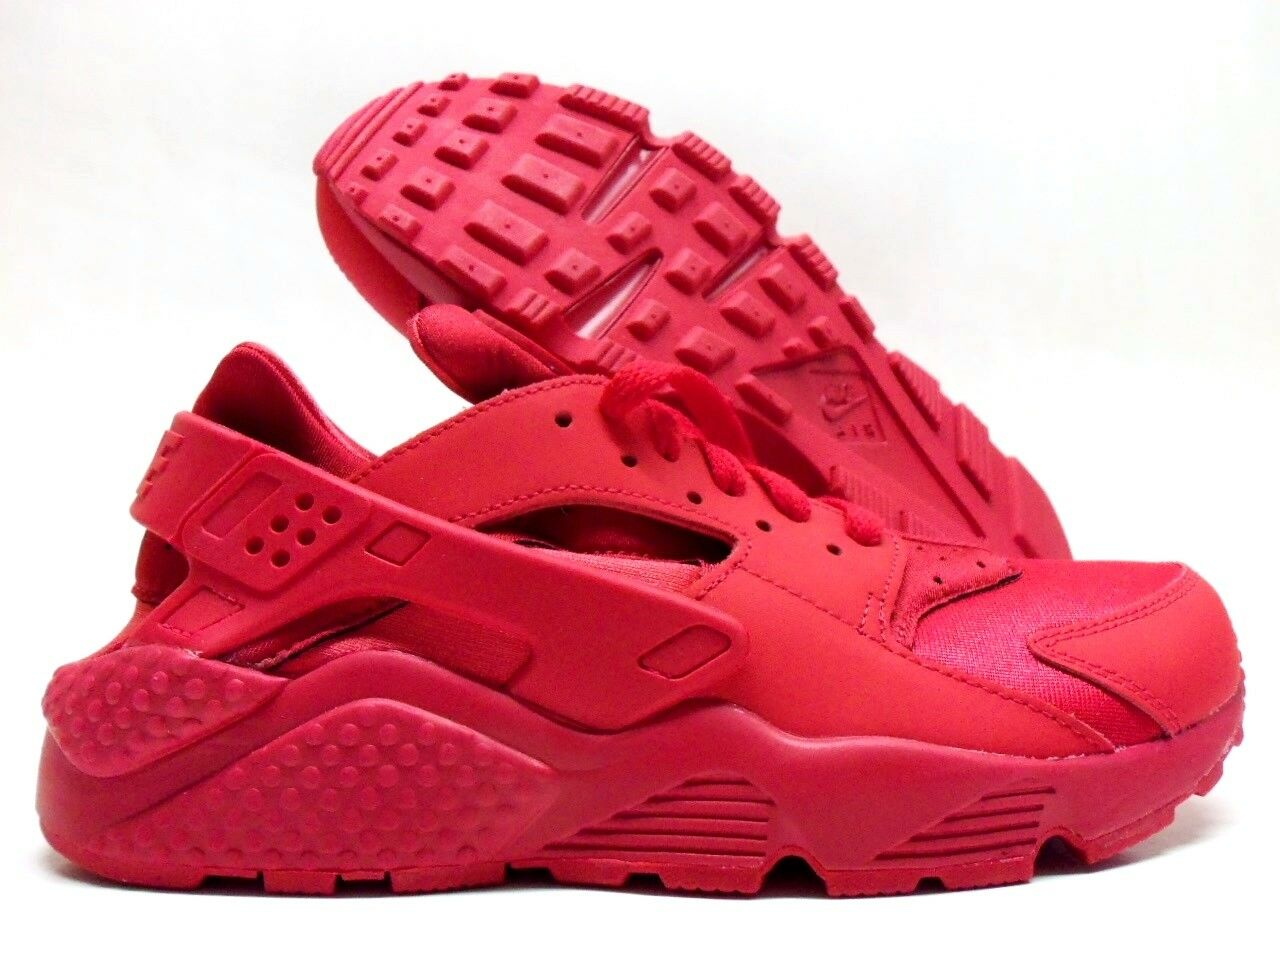 NIKE AIR HUARACHE ID  RED OCTOBER  SPORT RED SIZE WOMEN'S 7.5 [777331-978]